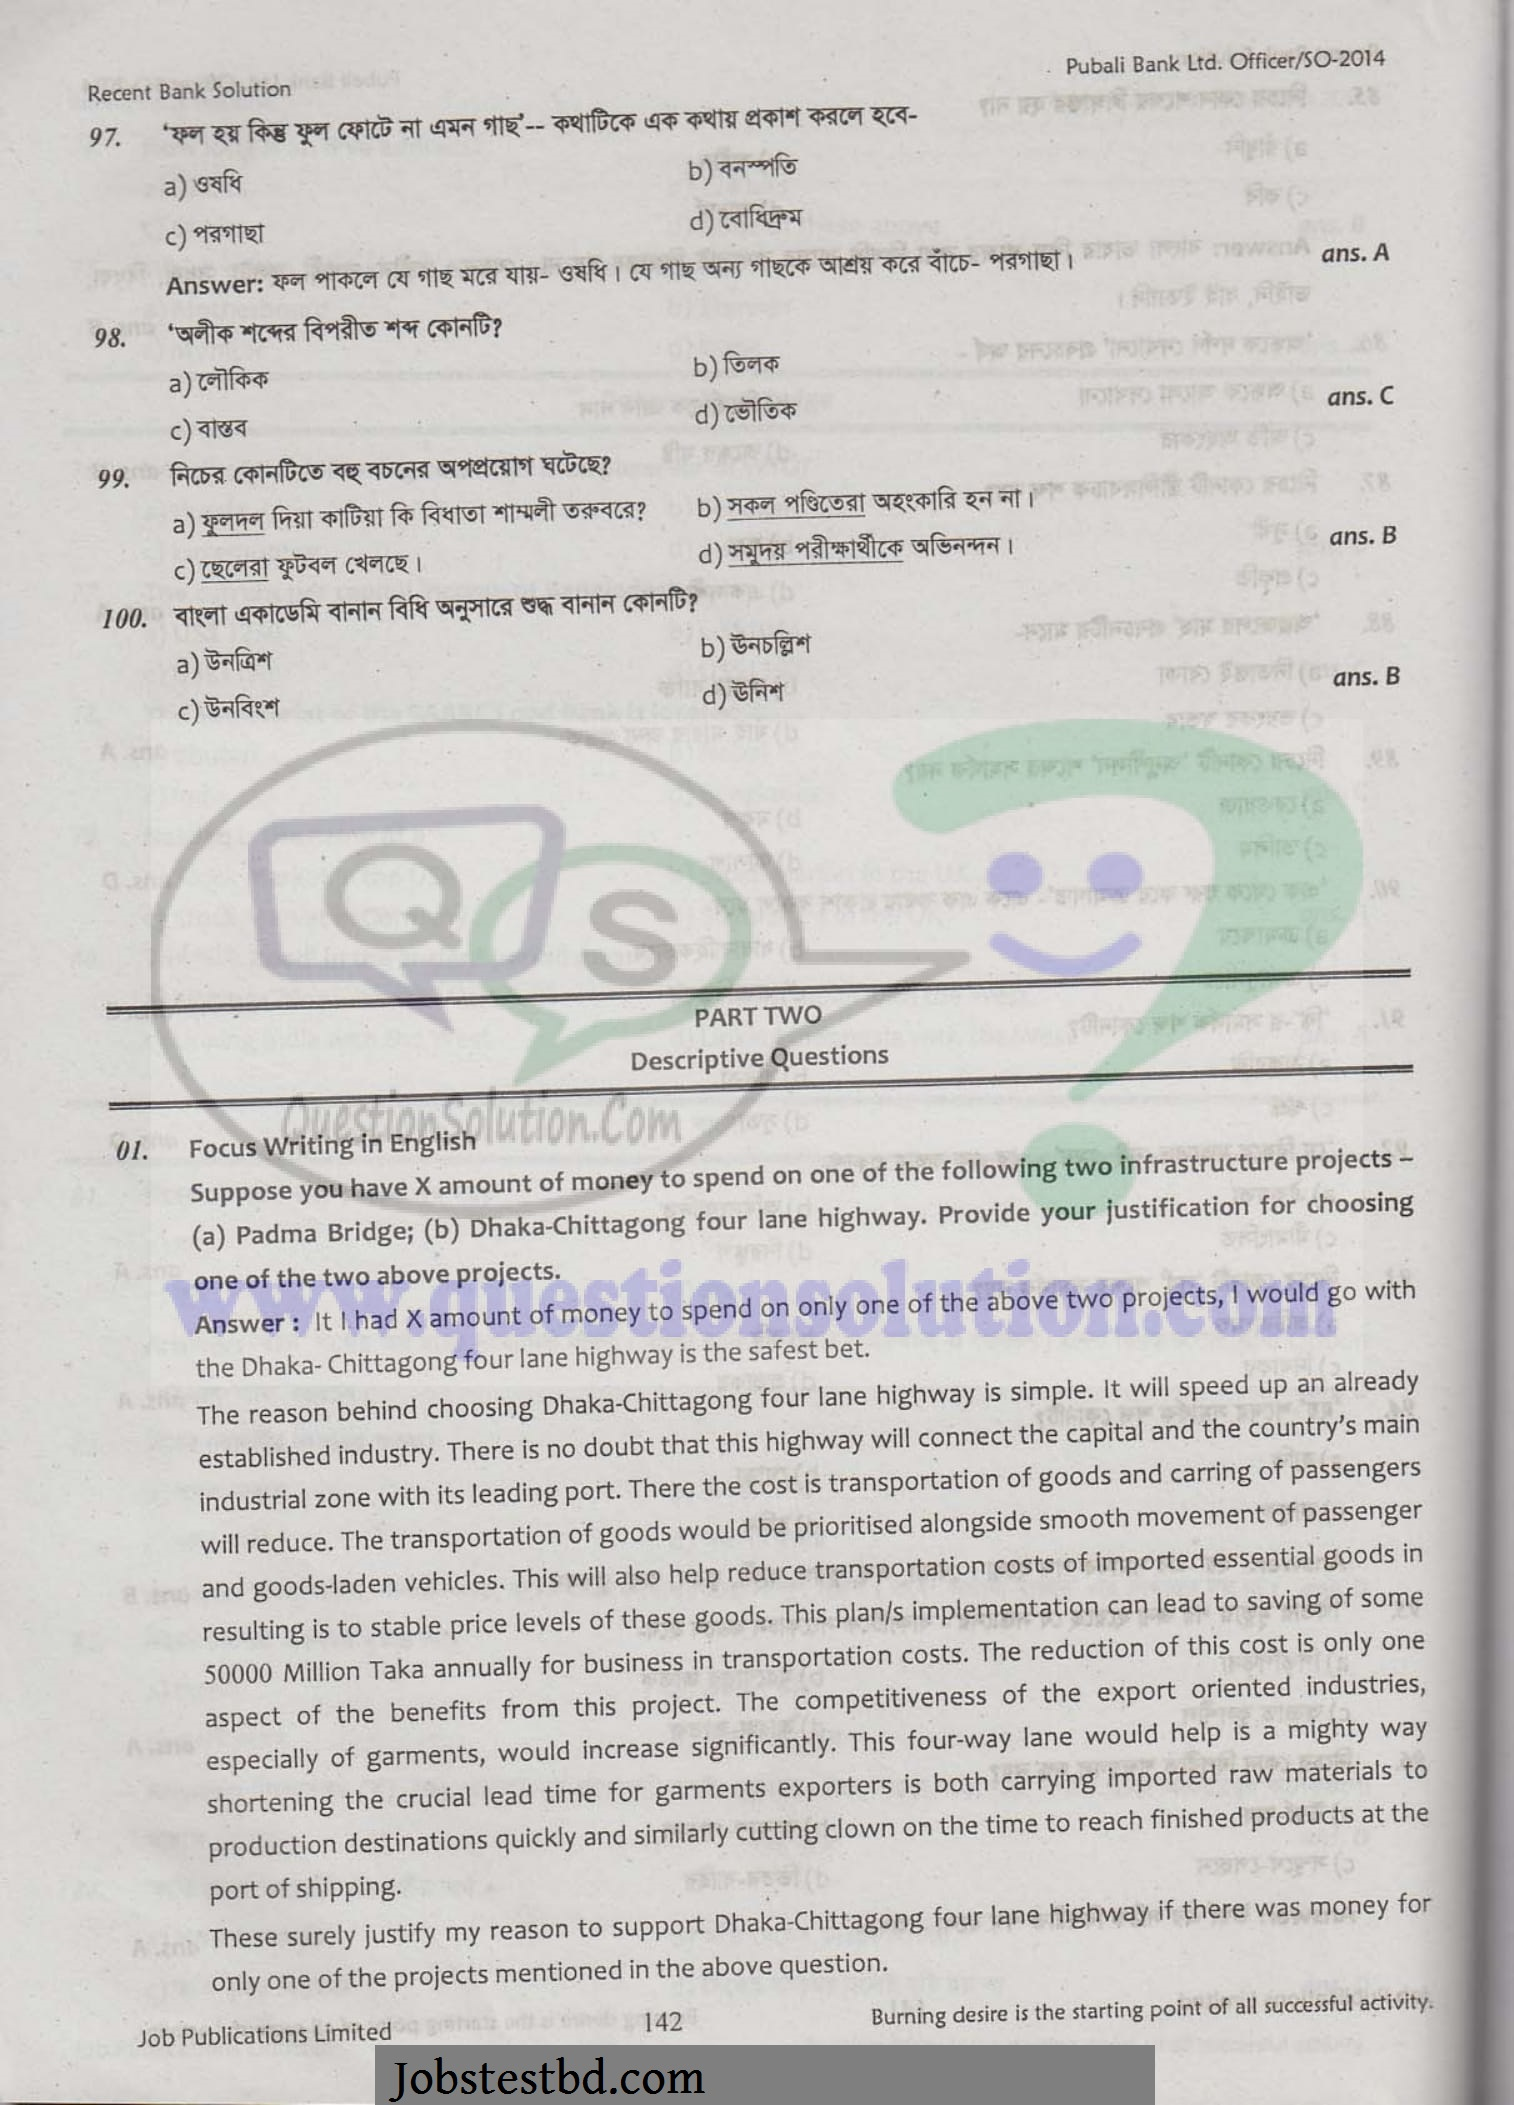 pubali-bank-officer-senior-officer-question-answers-2014